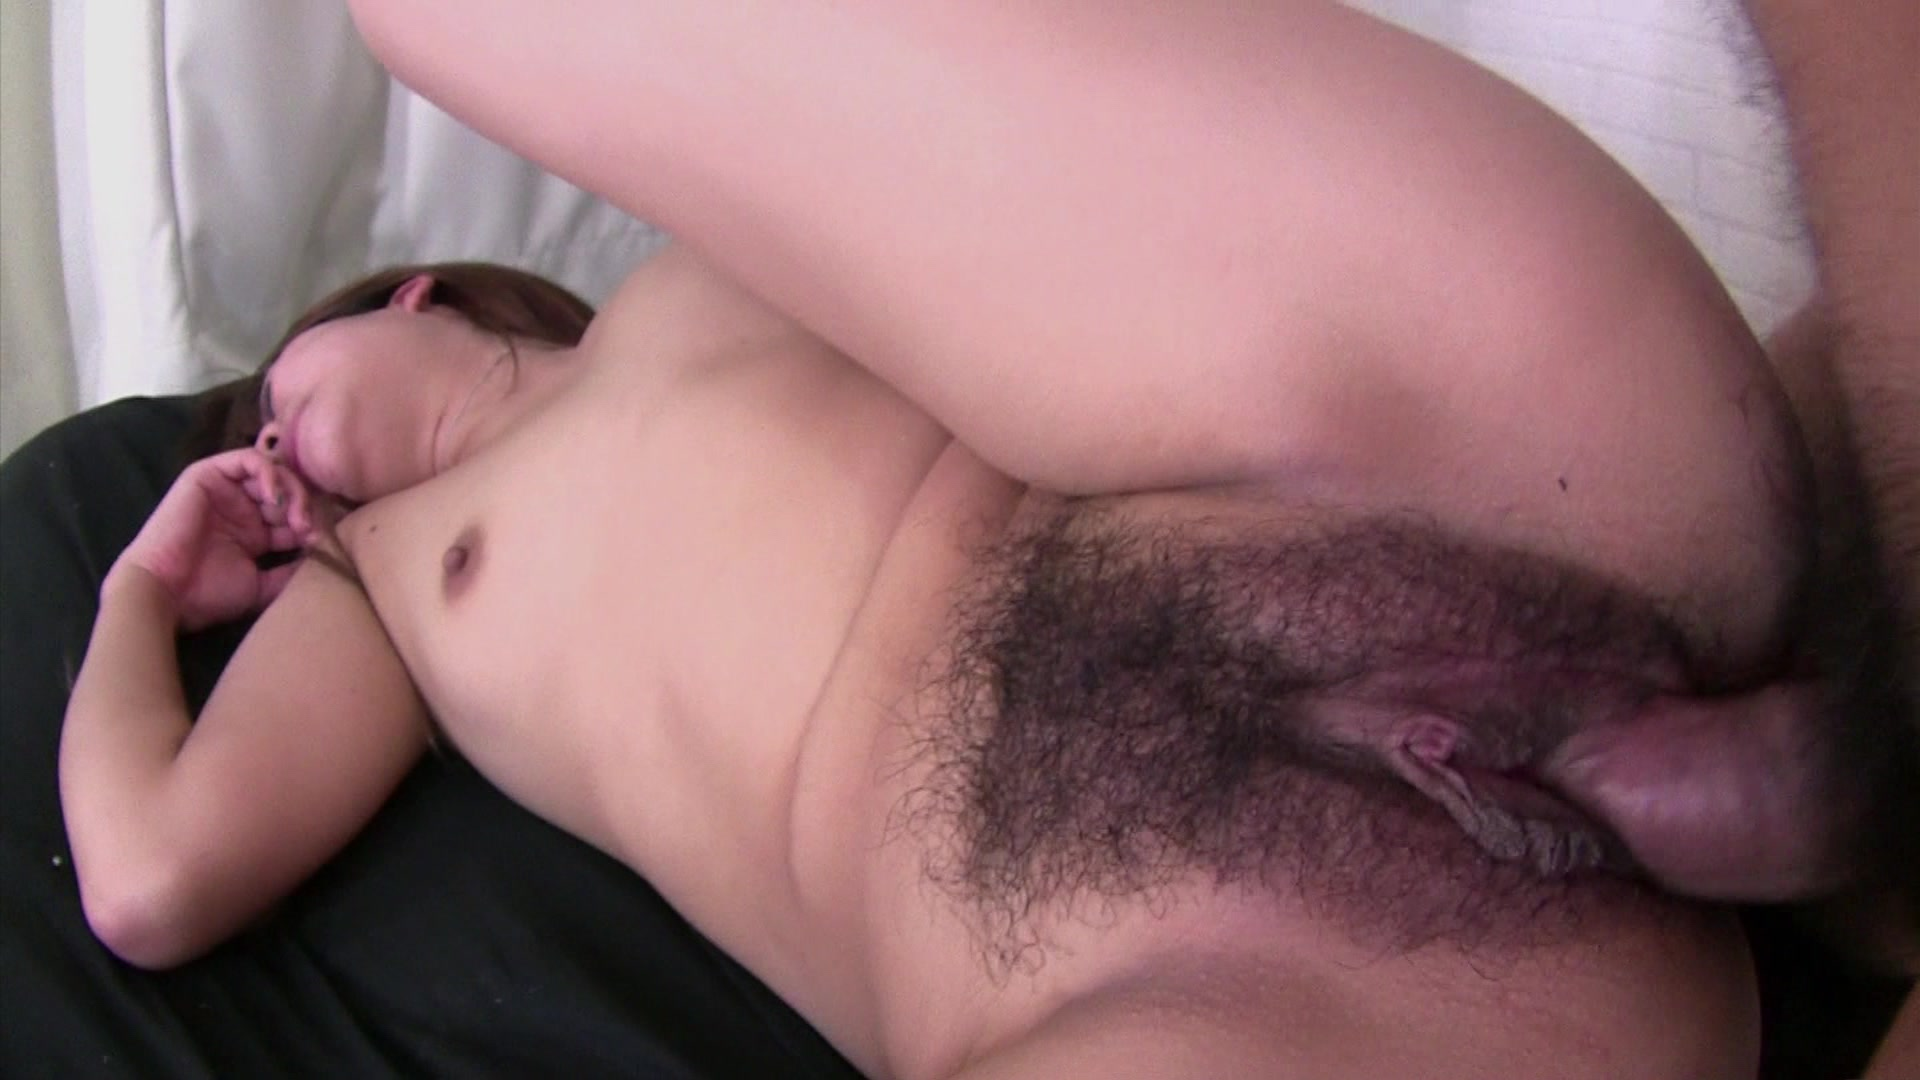 Spanked right on the ass hole